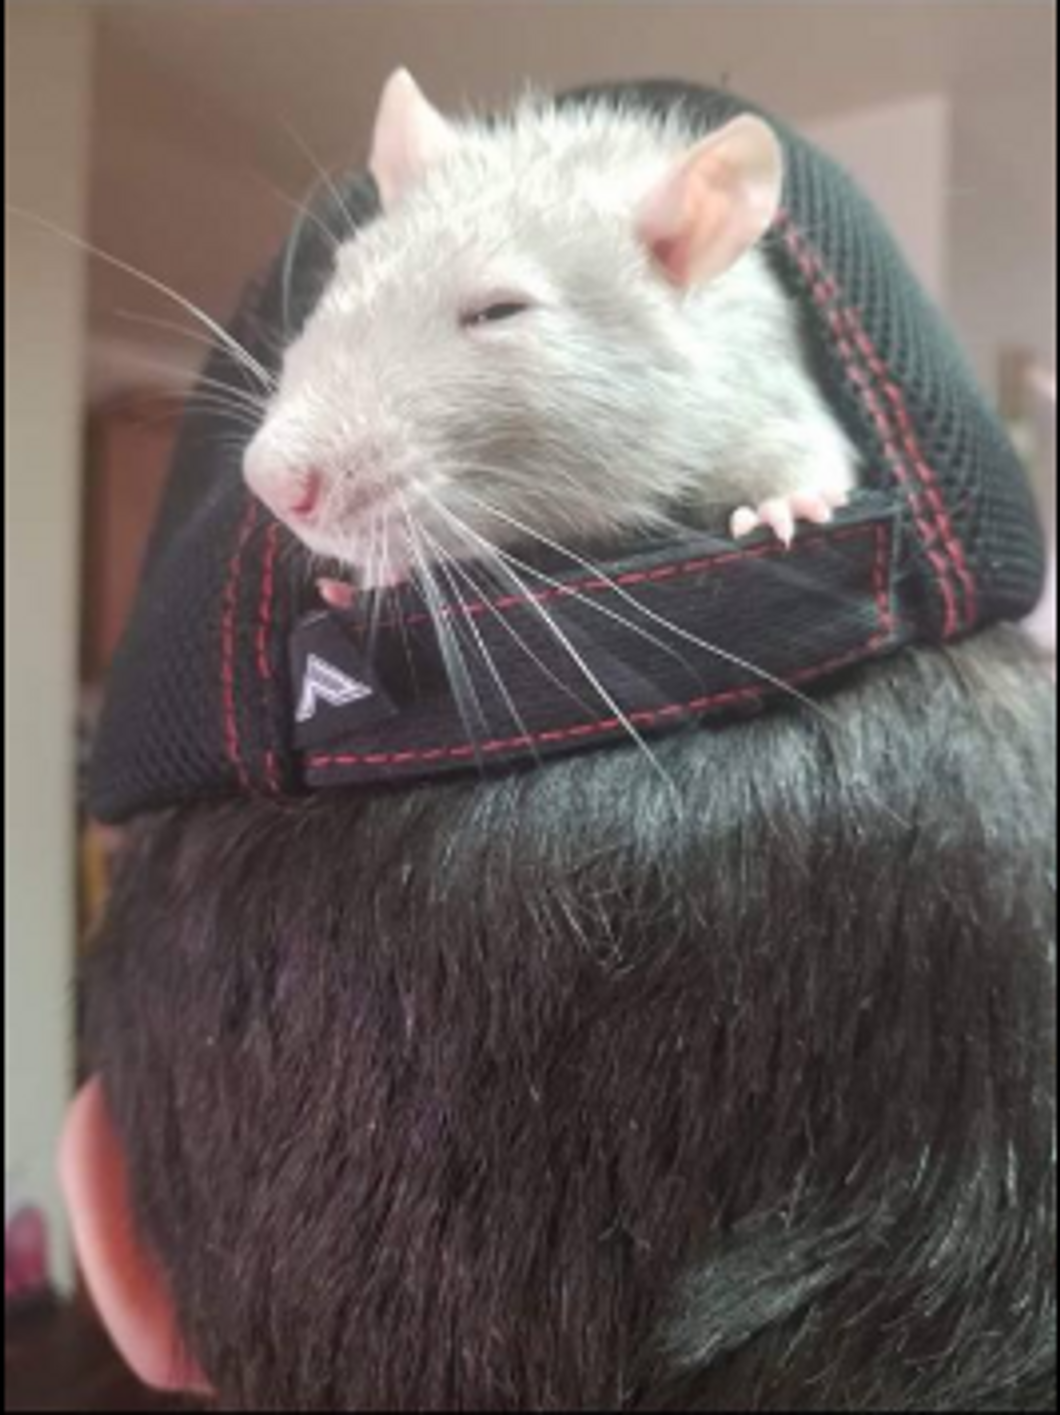 Lisa Hurtado- Silver sticking his head out of a hat